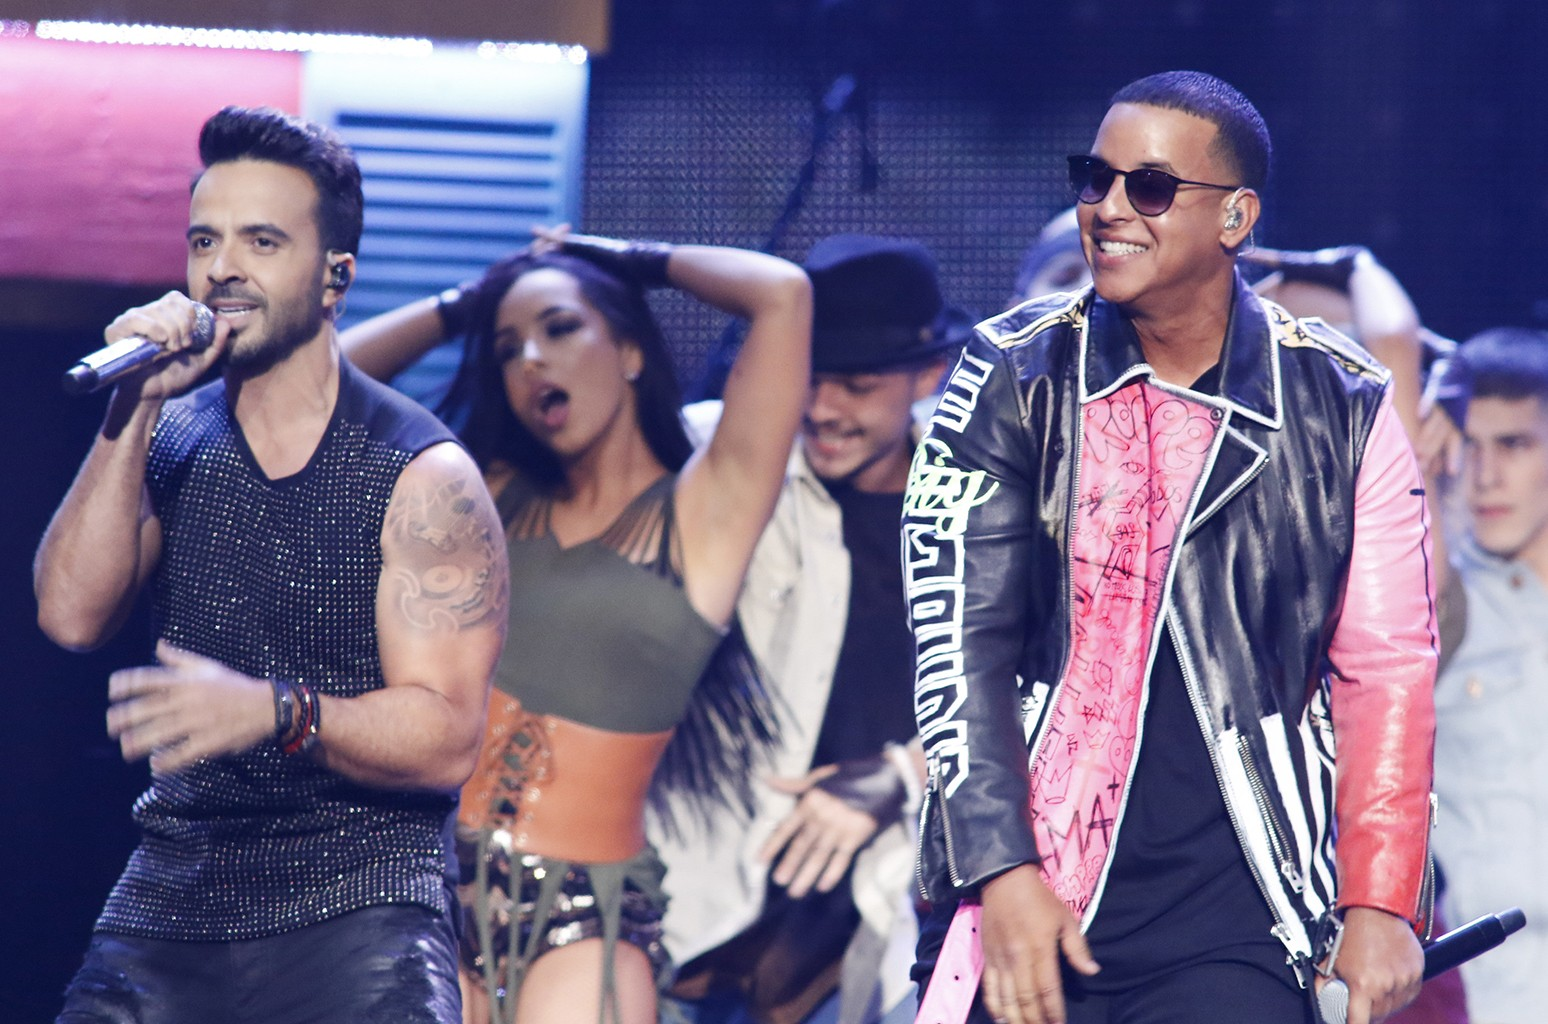 Luis Fonsi and Daddy Yankee perform at the University of Miami on April 27, 2017.